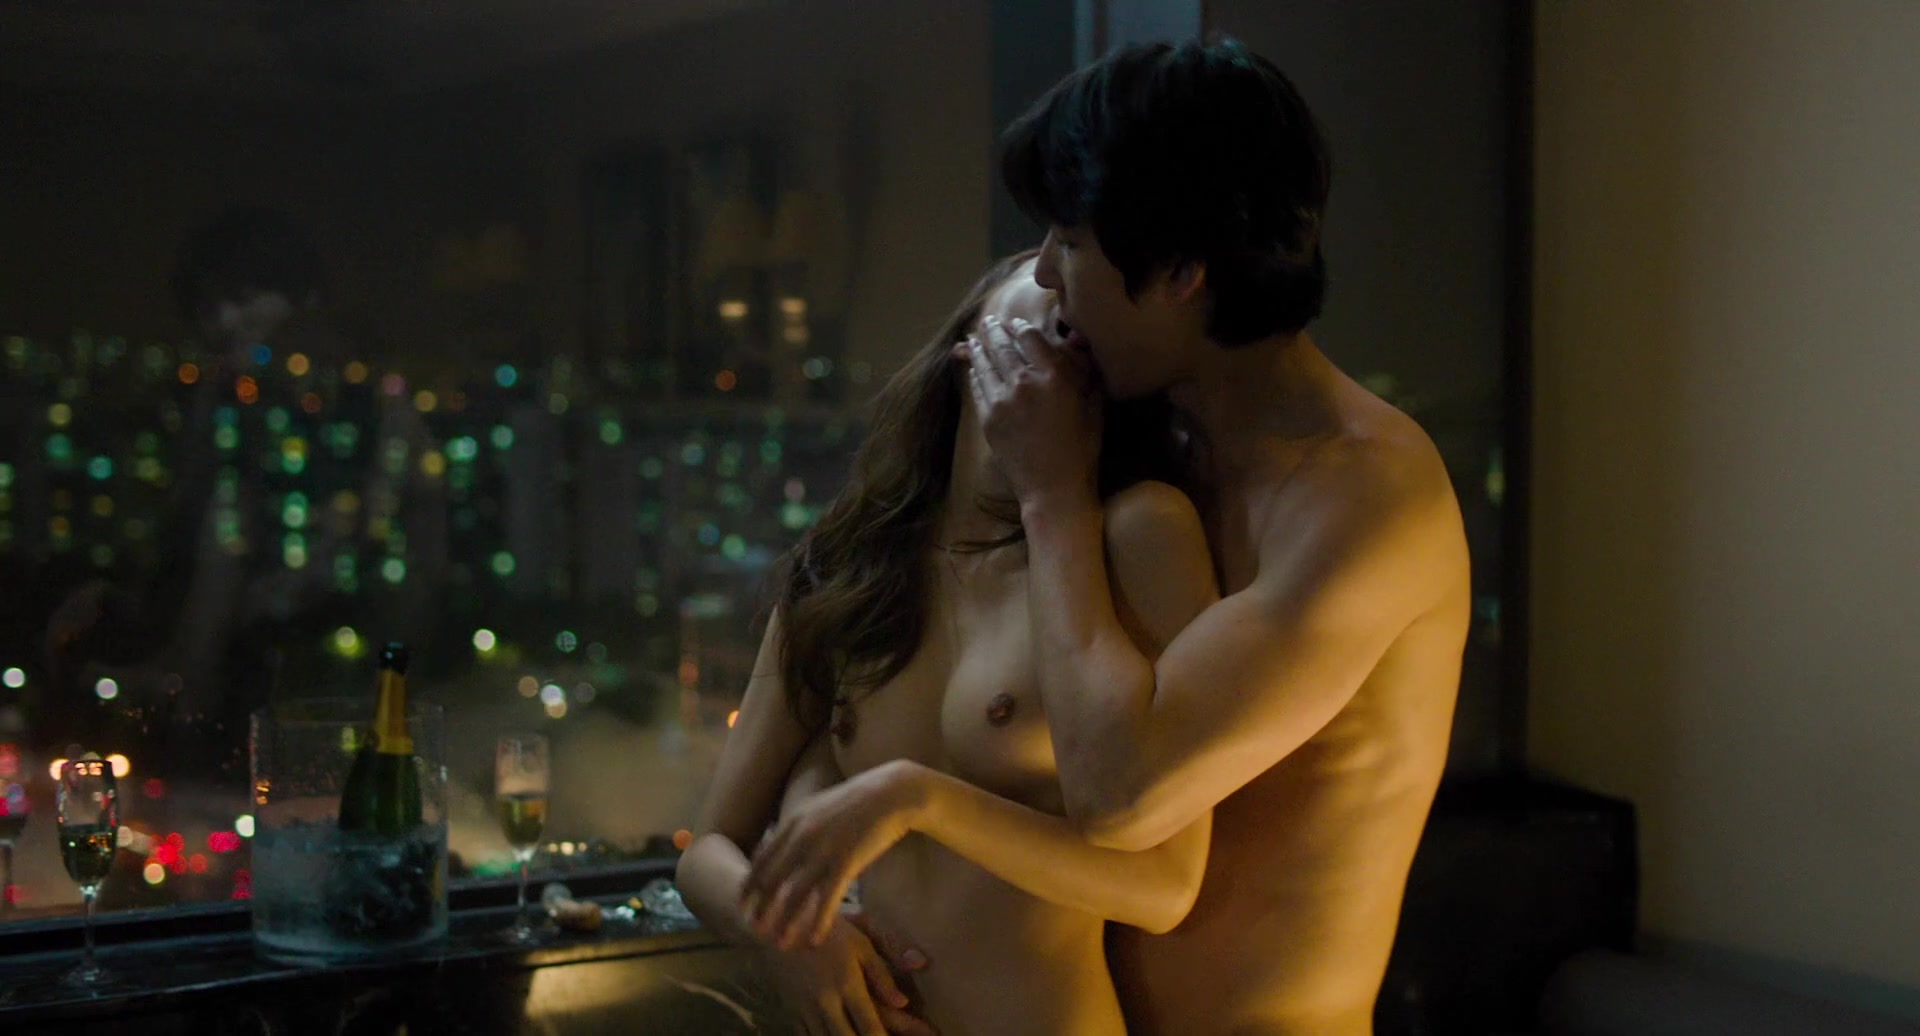 Hot sex scene in movie 14